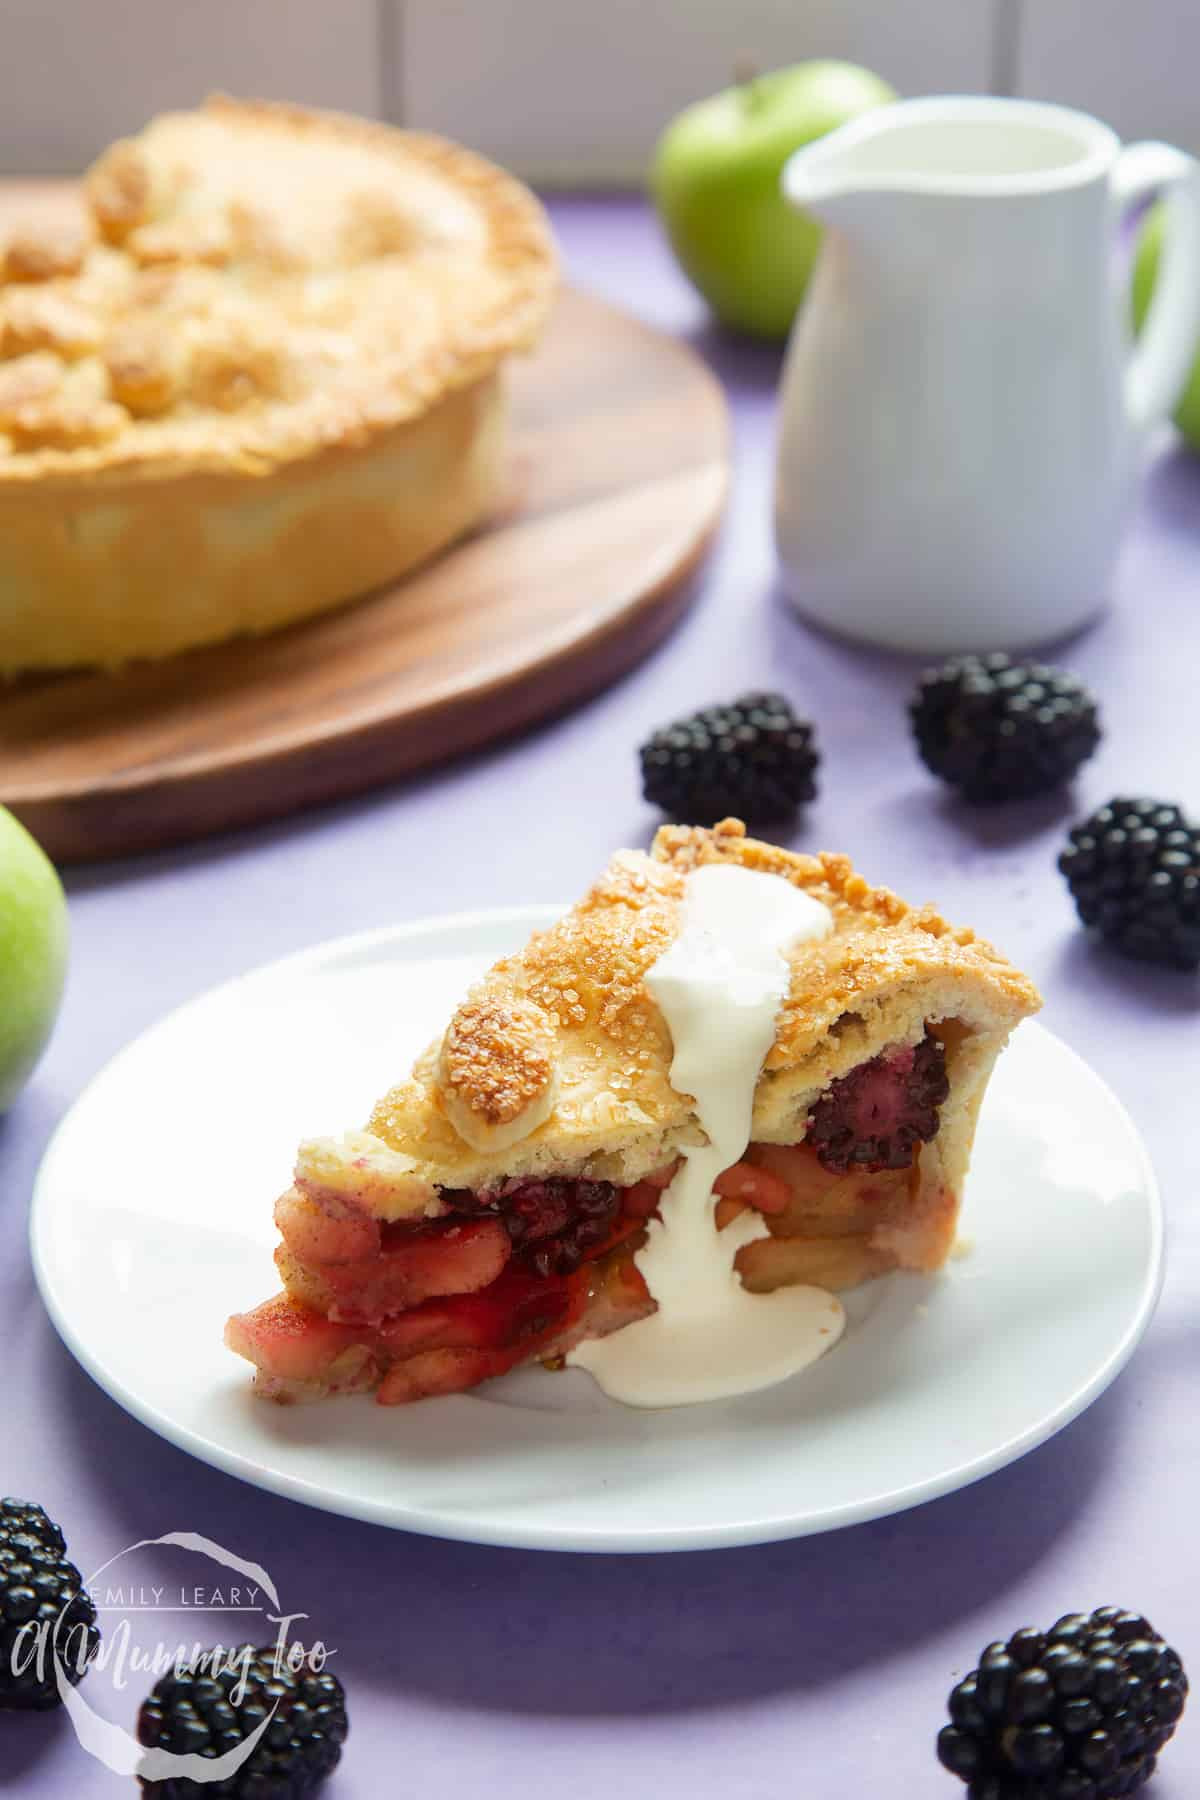 A slice of apple and blackberry pie on a white plate. Cream has been poured on top.